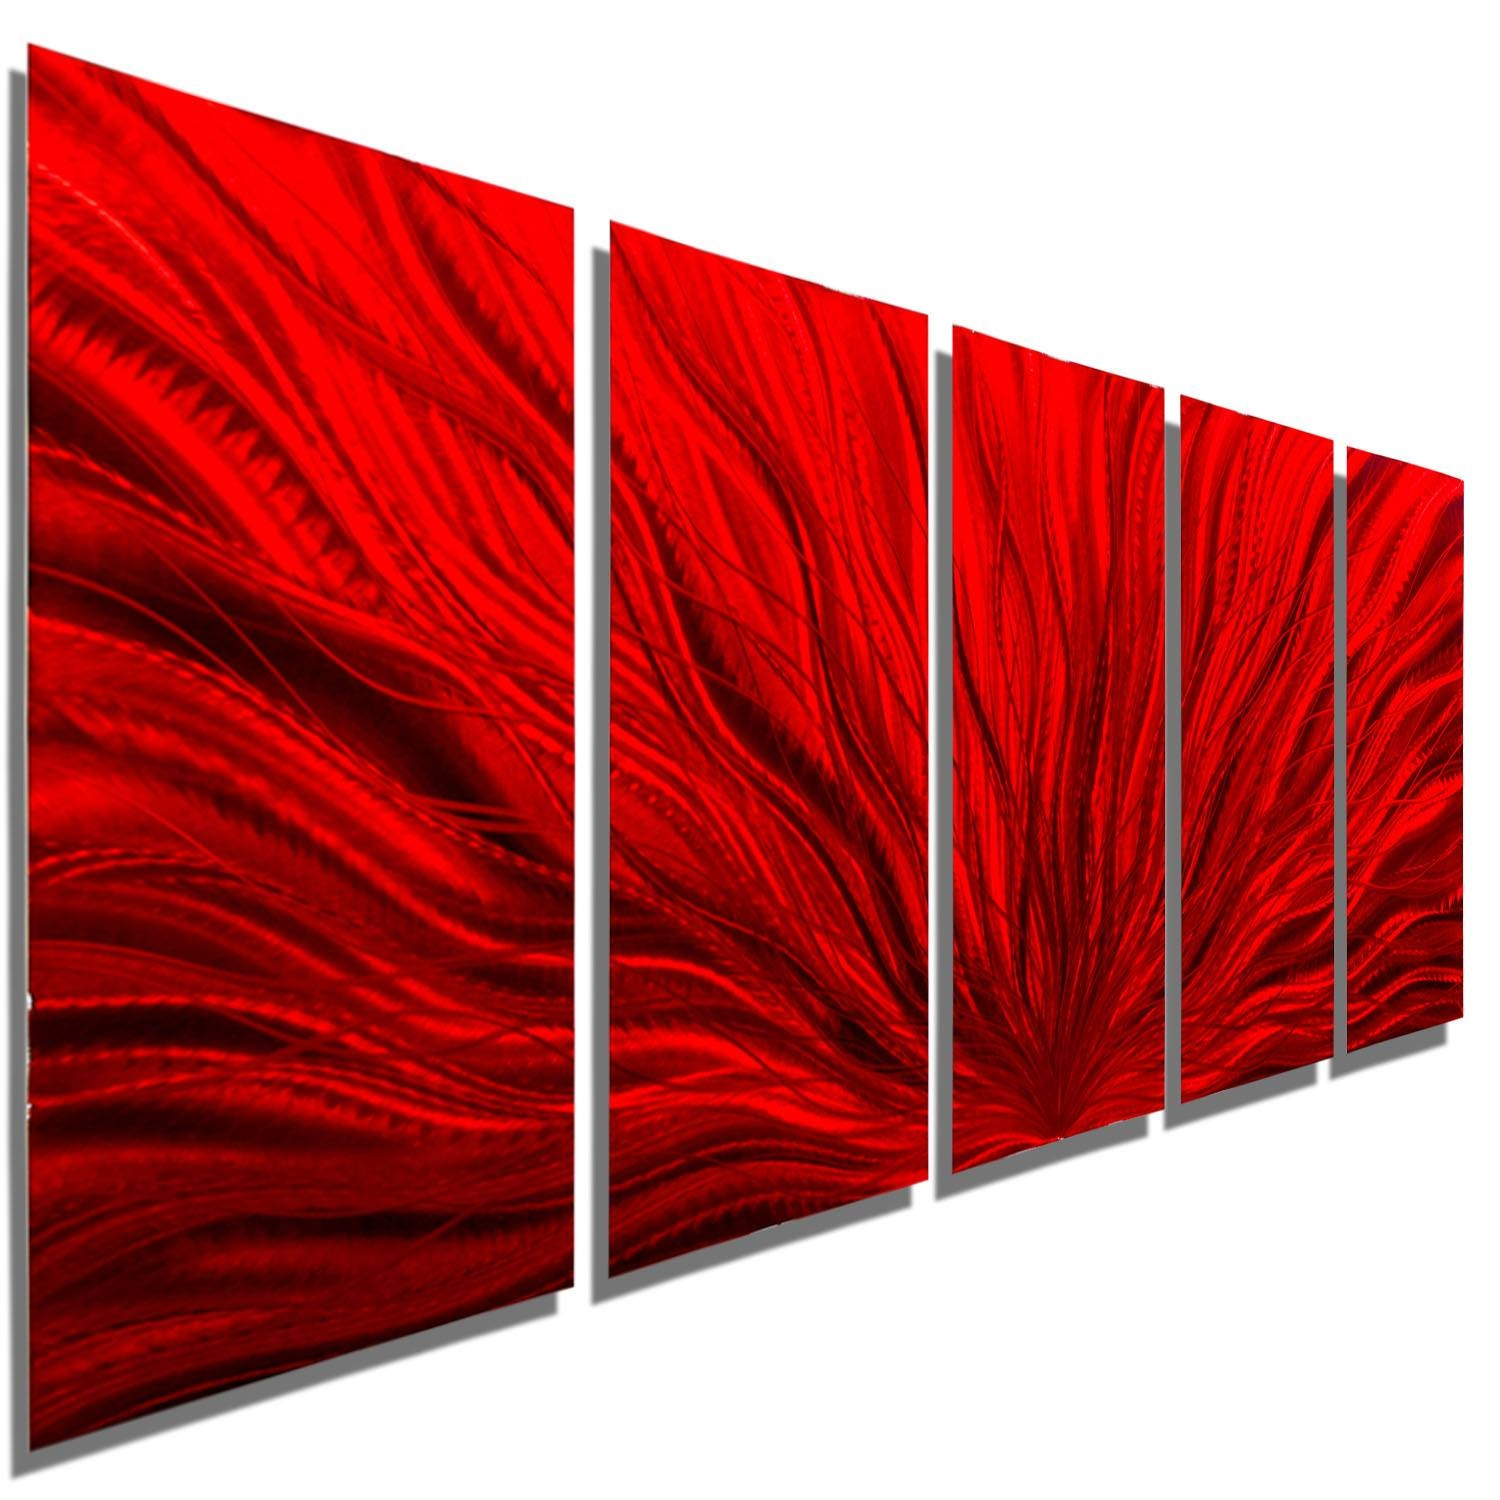 "Red Plumage – Modern Abstract Metal Wall Artjon Allen – 64"" X 24"" For 2017 Large Abstract Metal Wall Art (Gallery 1 of 20)"